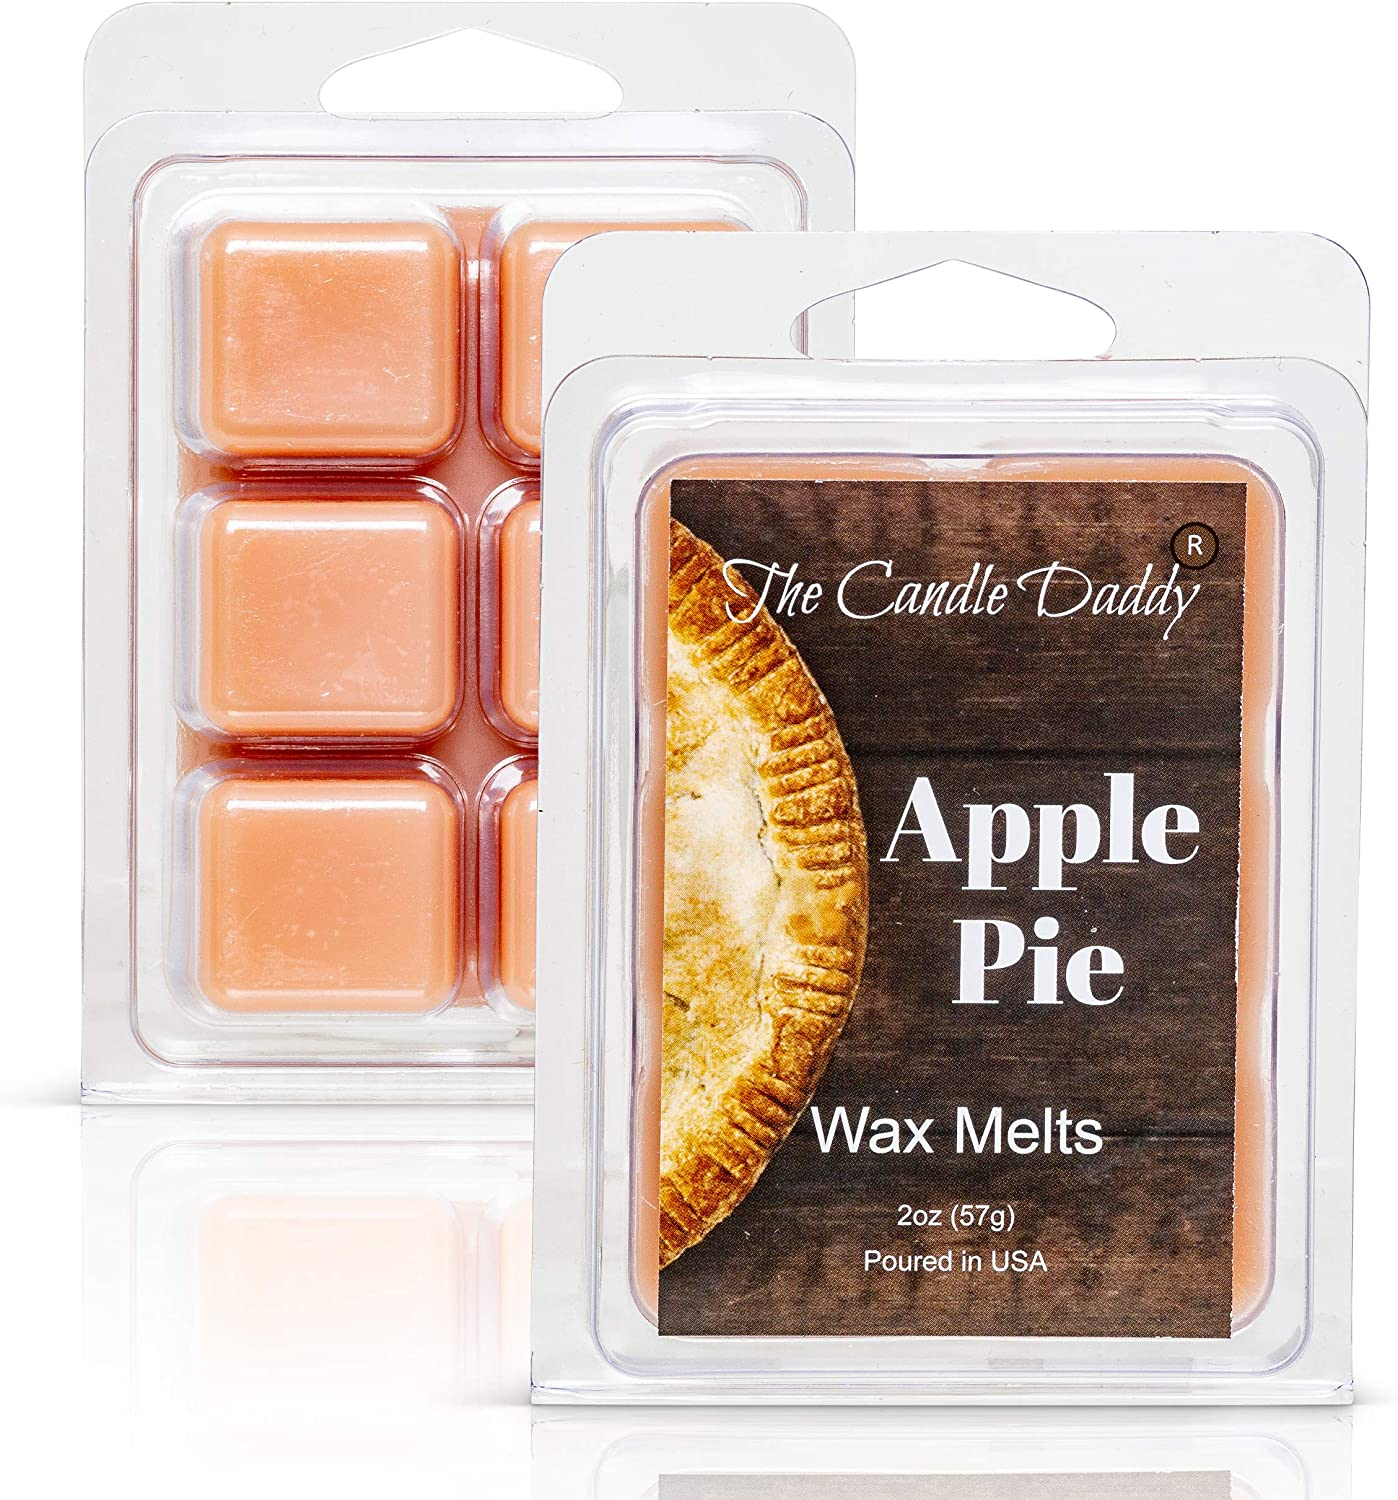 Apple Pie - Sweet American Freshly Baked Scented Melt- Maximum Scent Wax Cubes/Melts- 1 Pack -2 Ounces- 6 Cubes Gift for Women, Men, BFF, Friend, Wife, Mom, Birthday, Sister, Daughter, Long Lasting